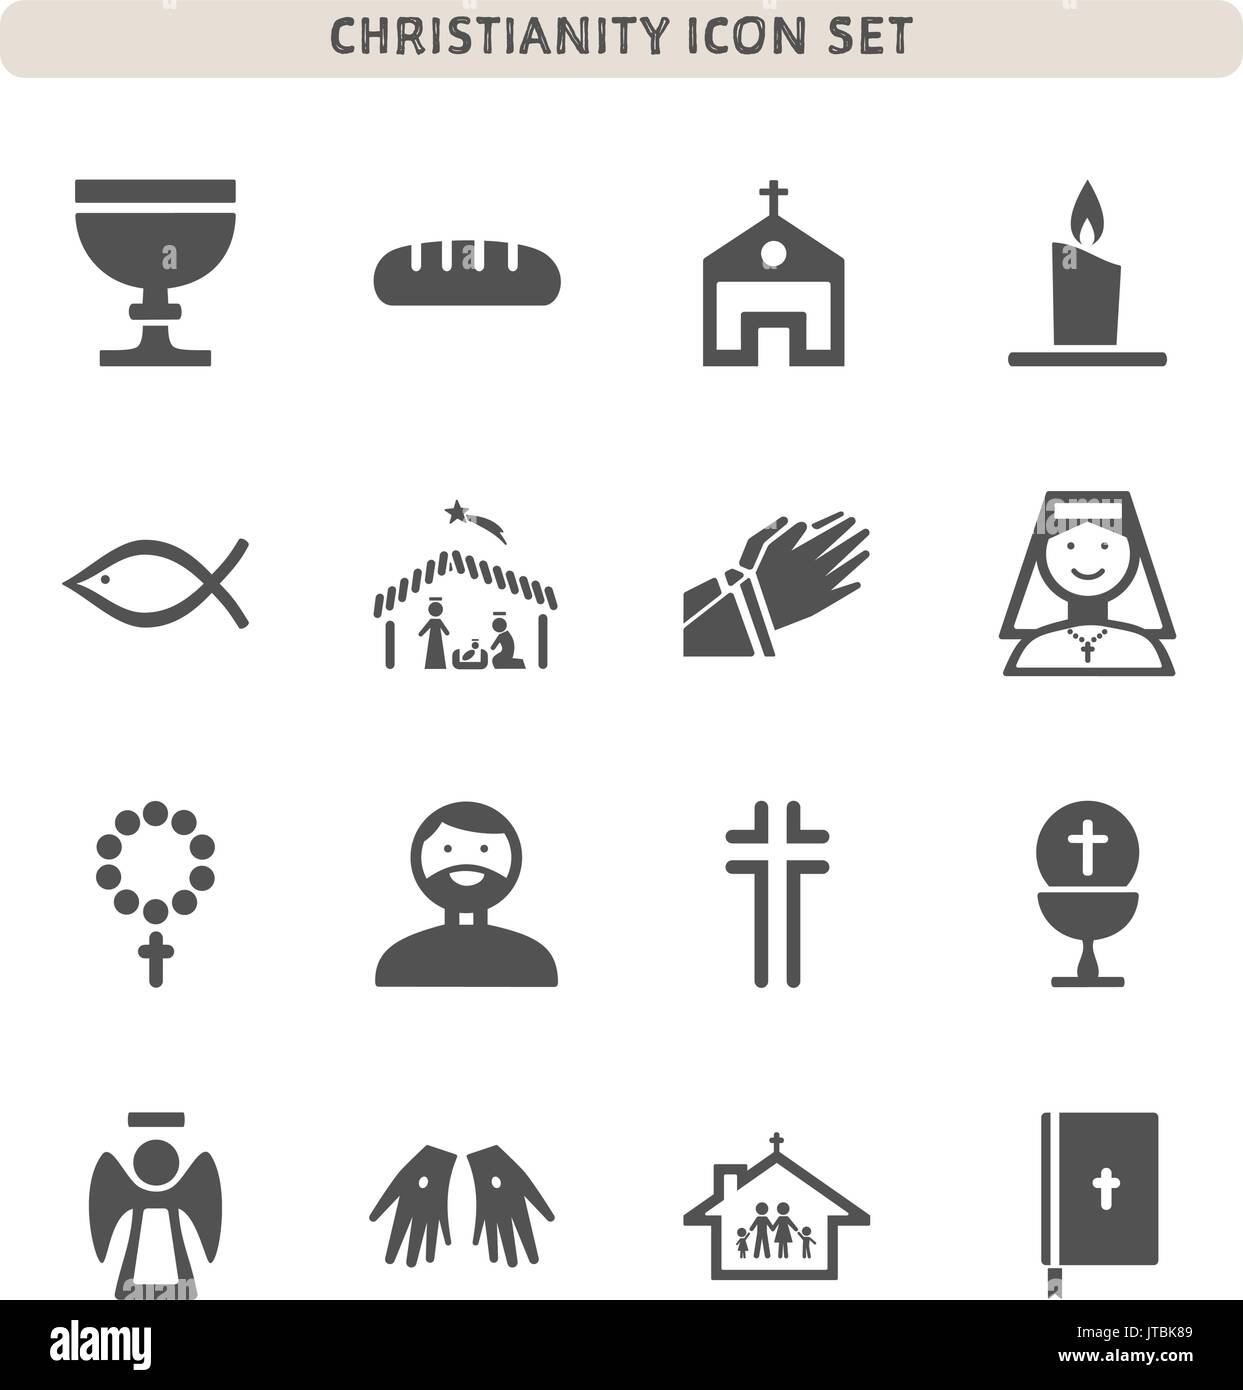 Christianity icons set on white background - Stock Vector